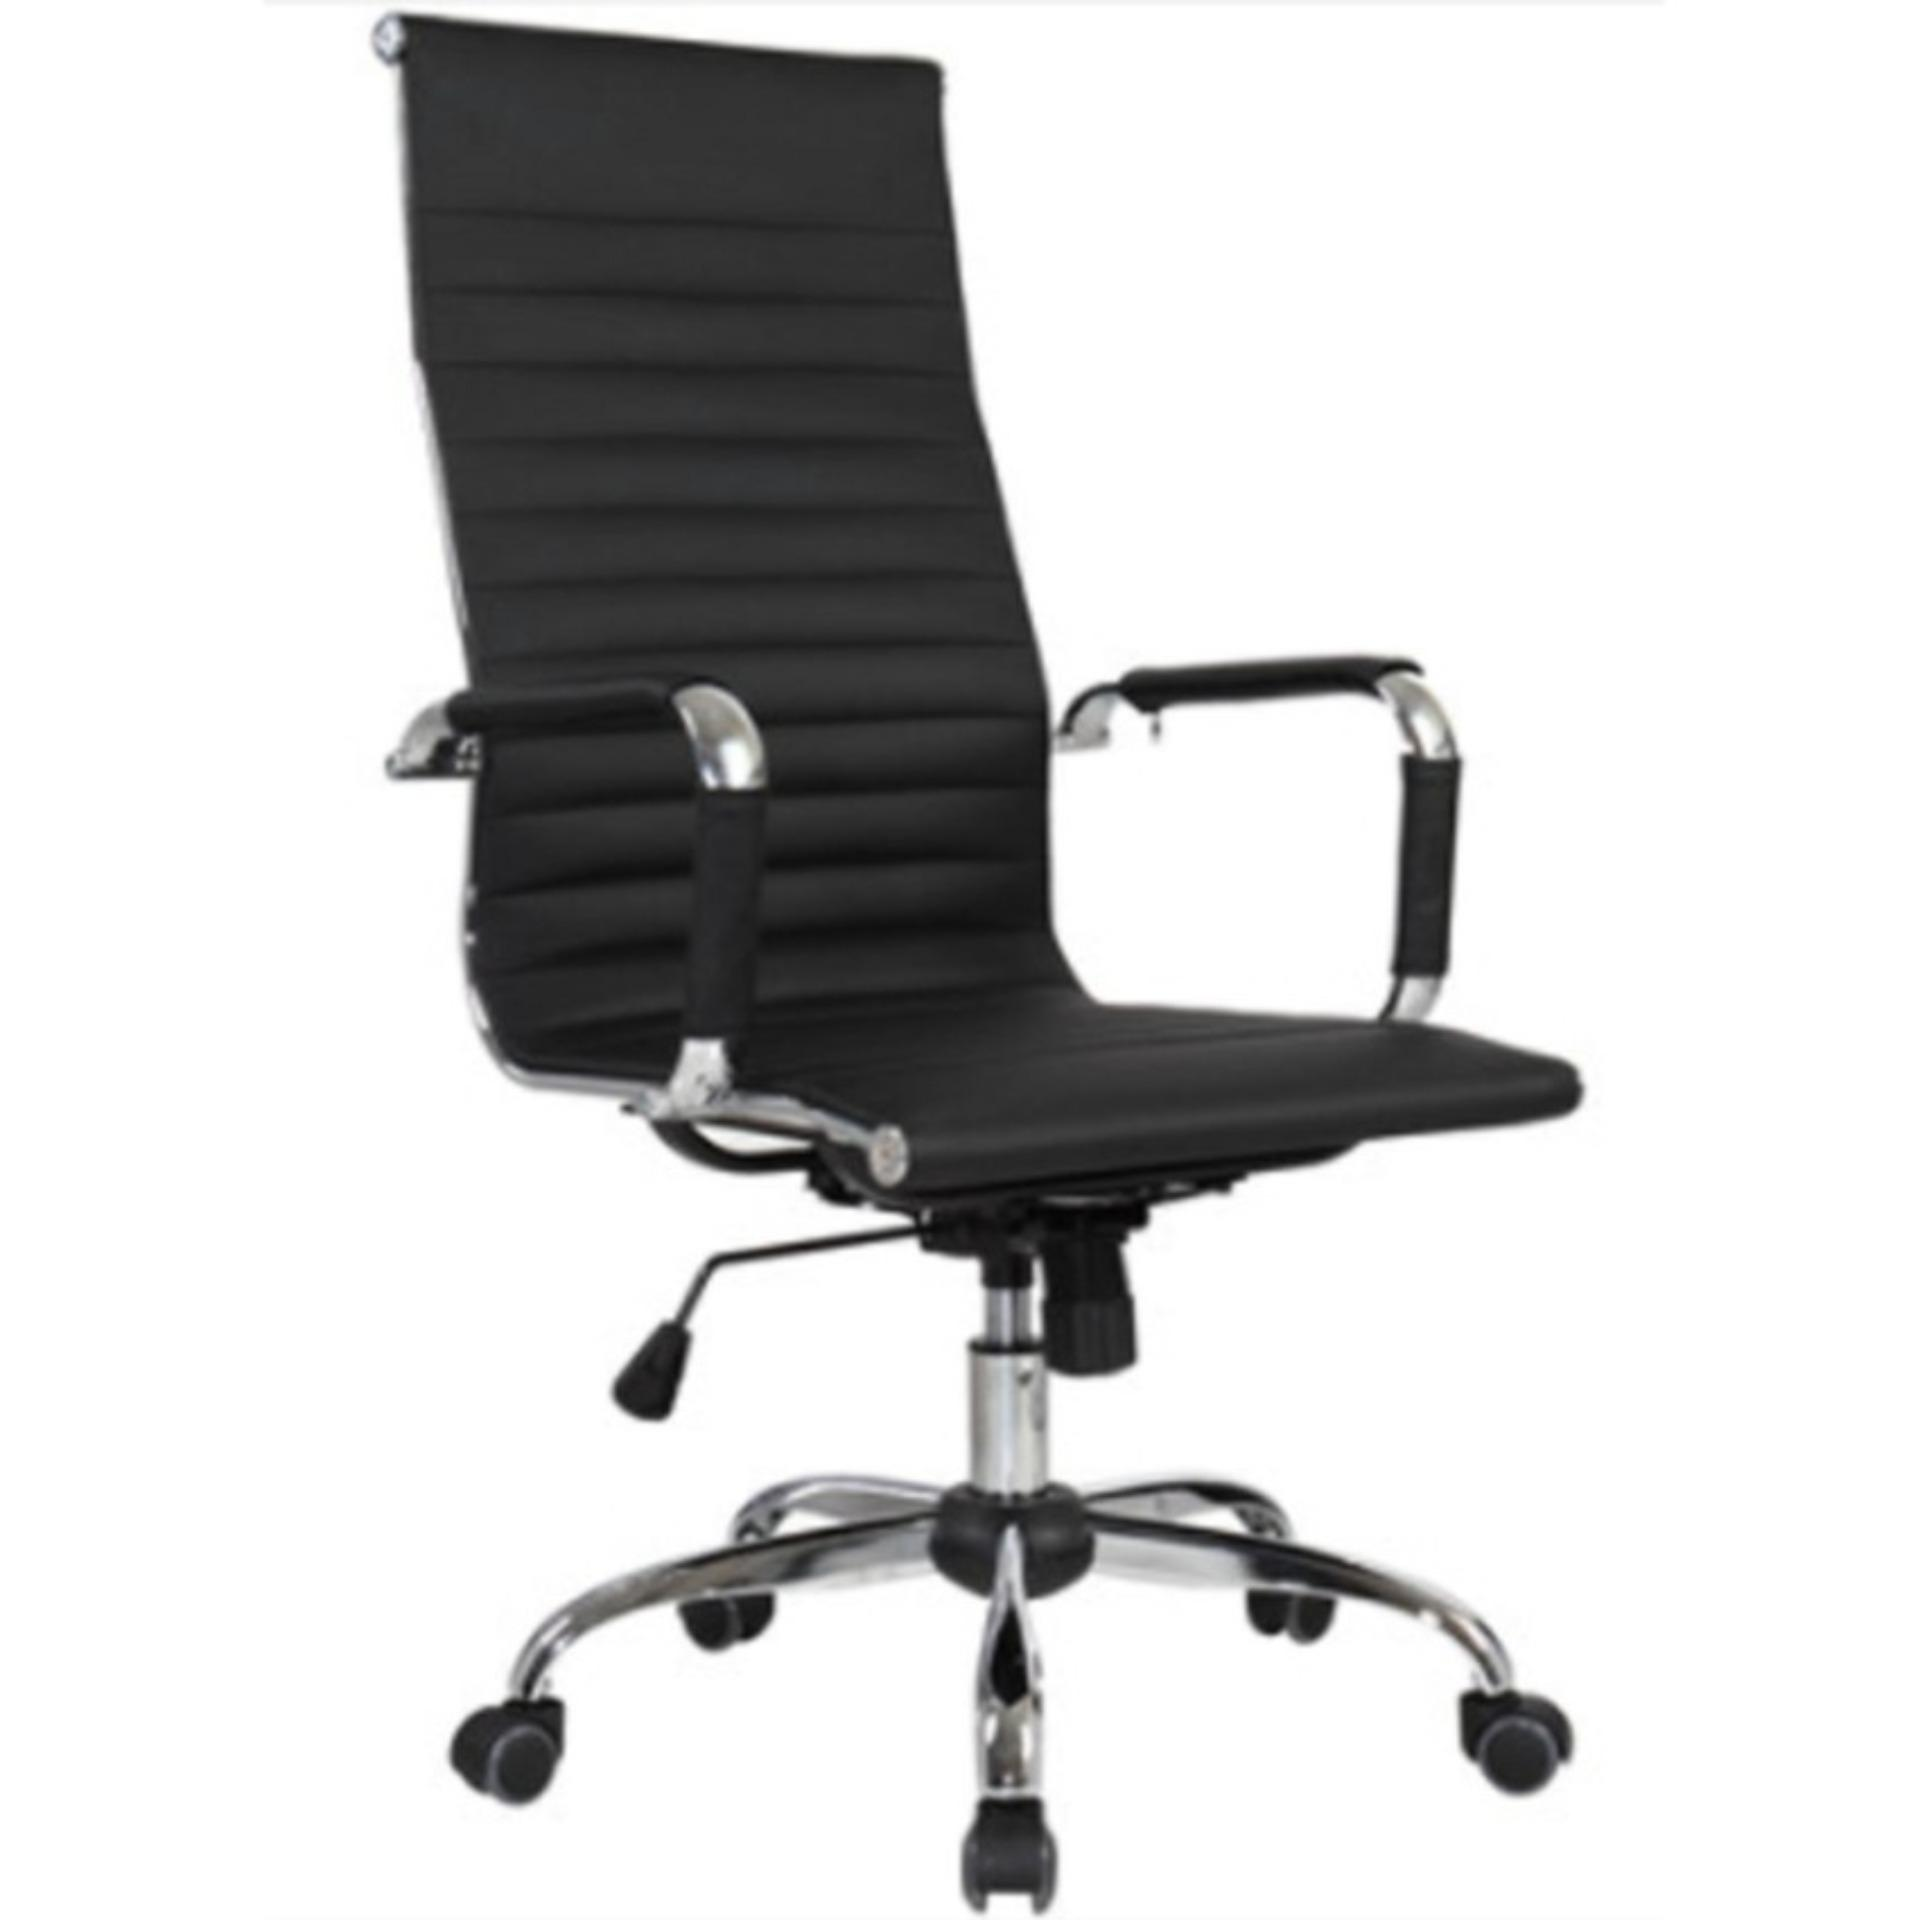 ergonomic chair singapore accent chairs home goods office manager leather